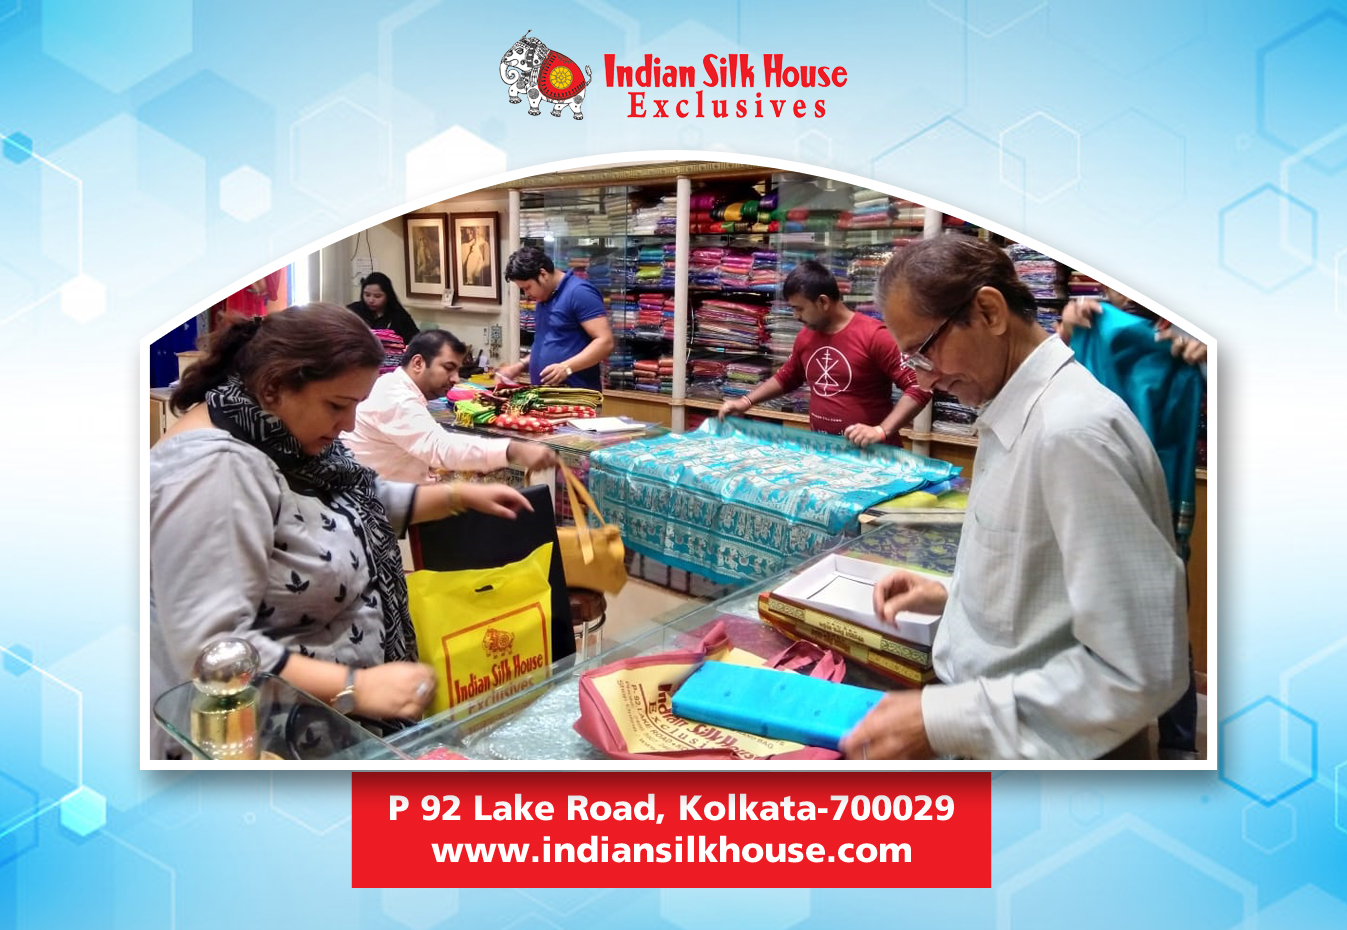 Indian Silk House Exclusives